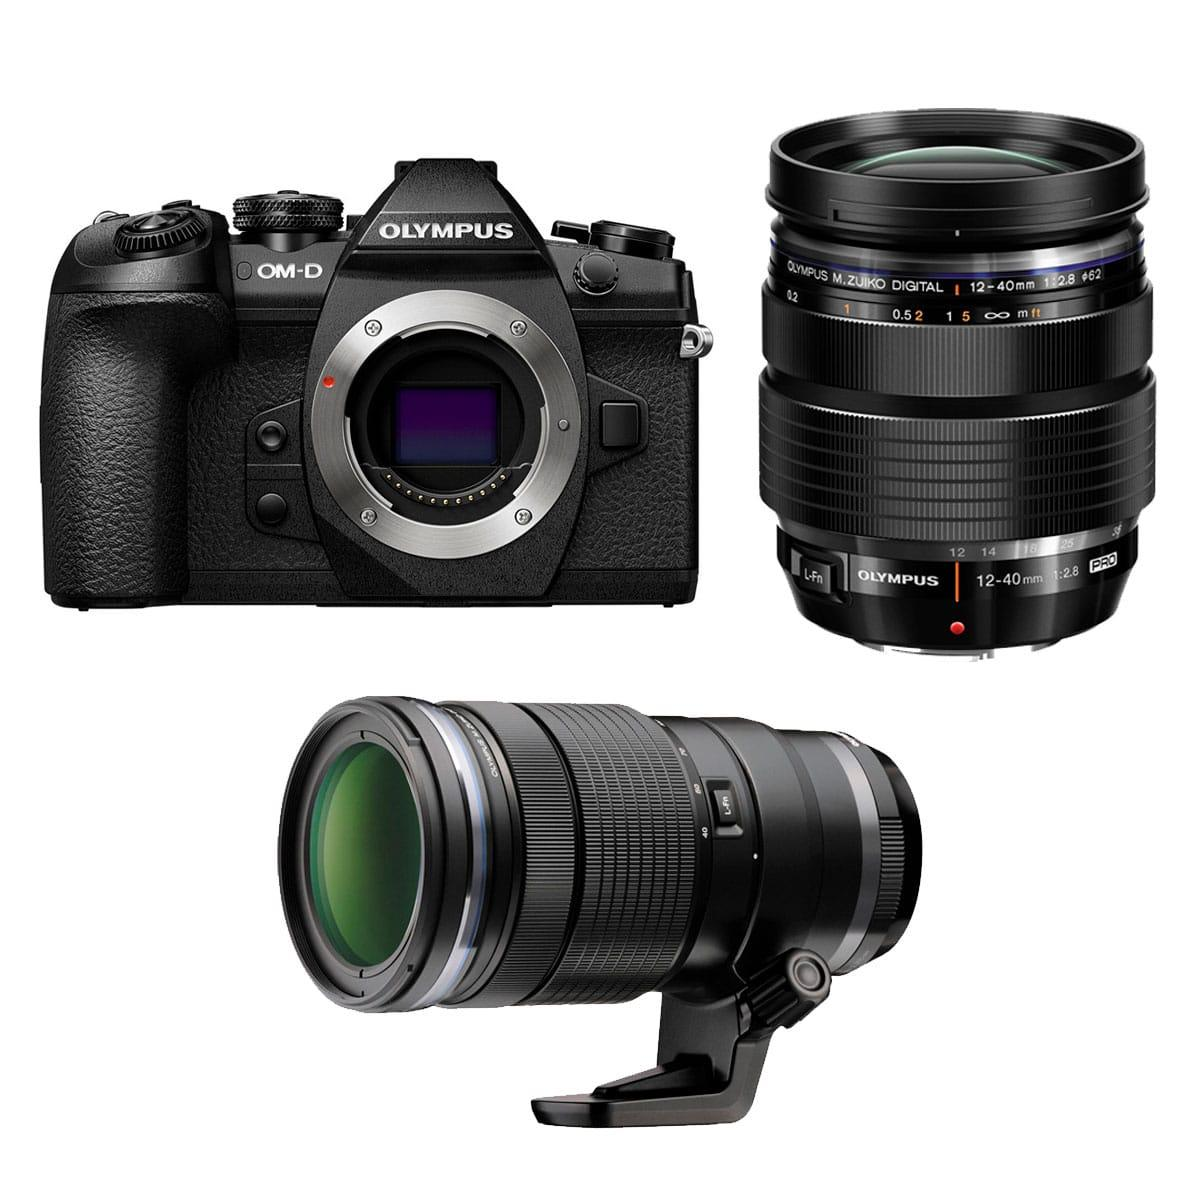 Olympus E-M1 Mark II PRO Double Zoom Kit